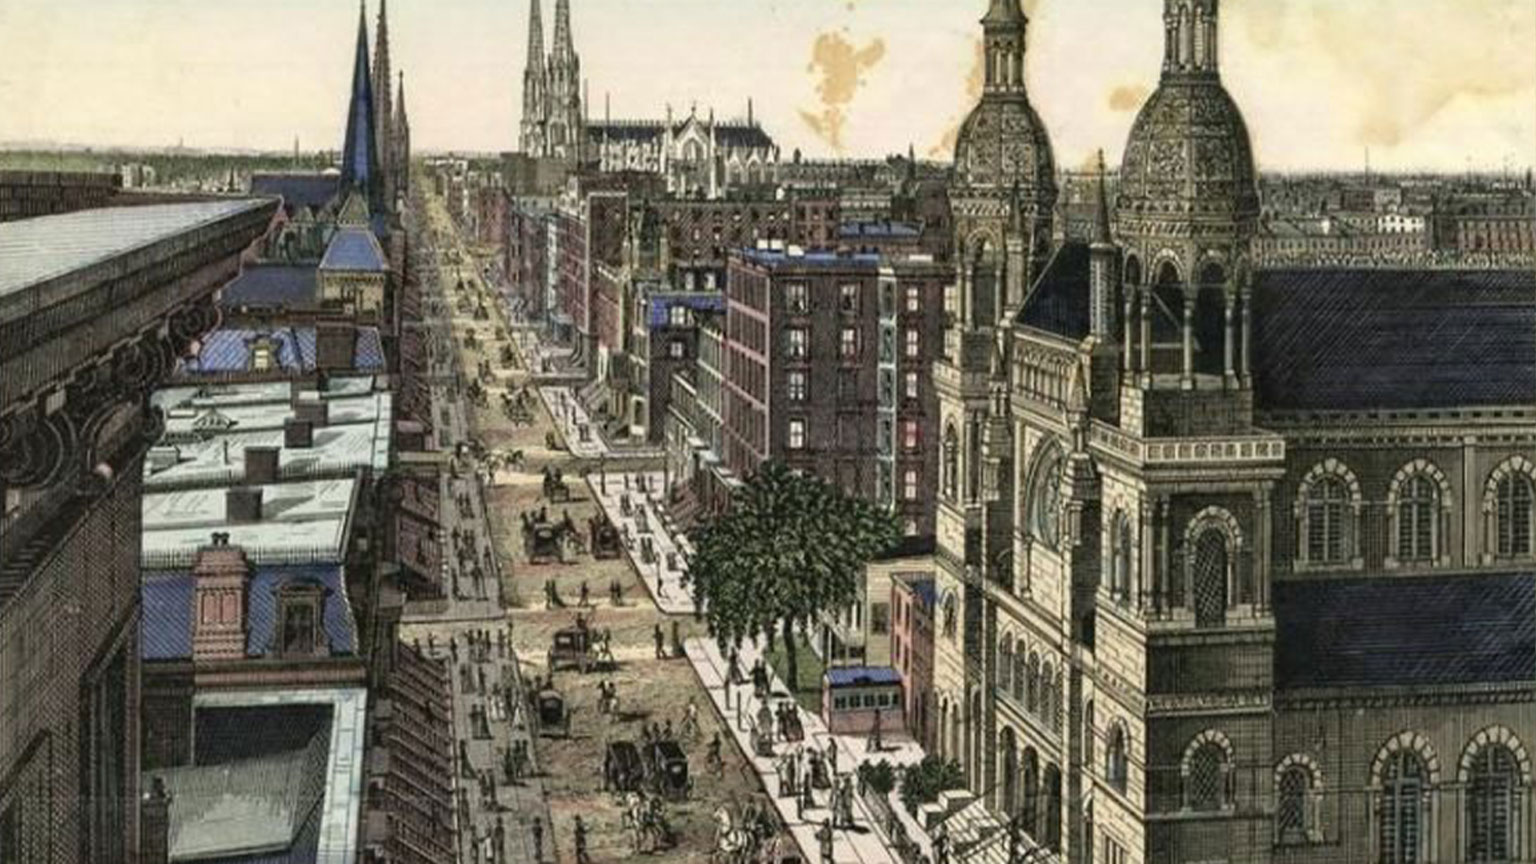 This is what New York City would have looked like while the Gormans were living there.